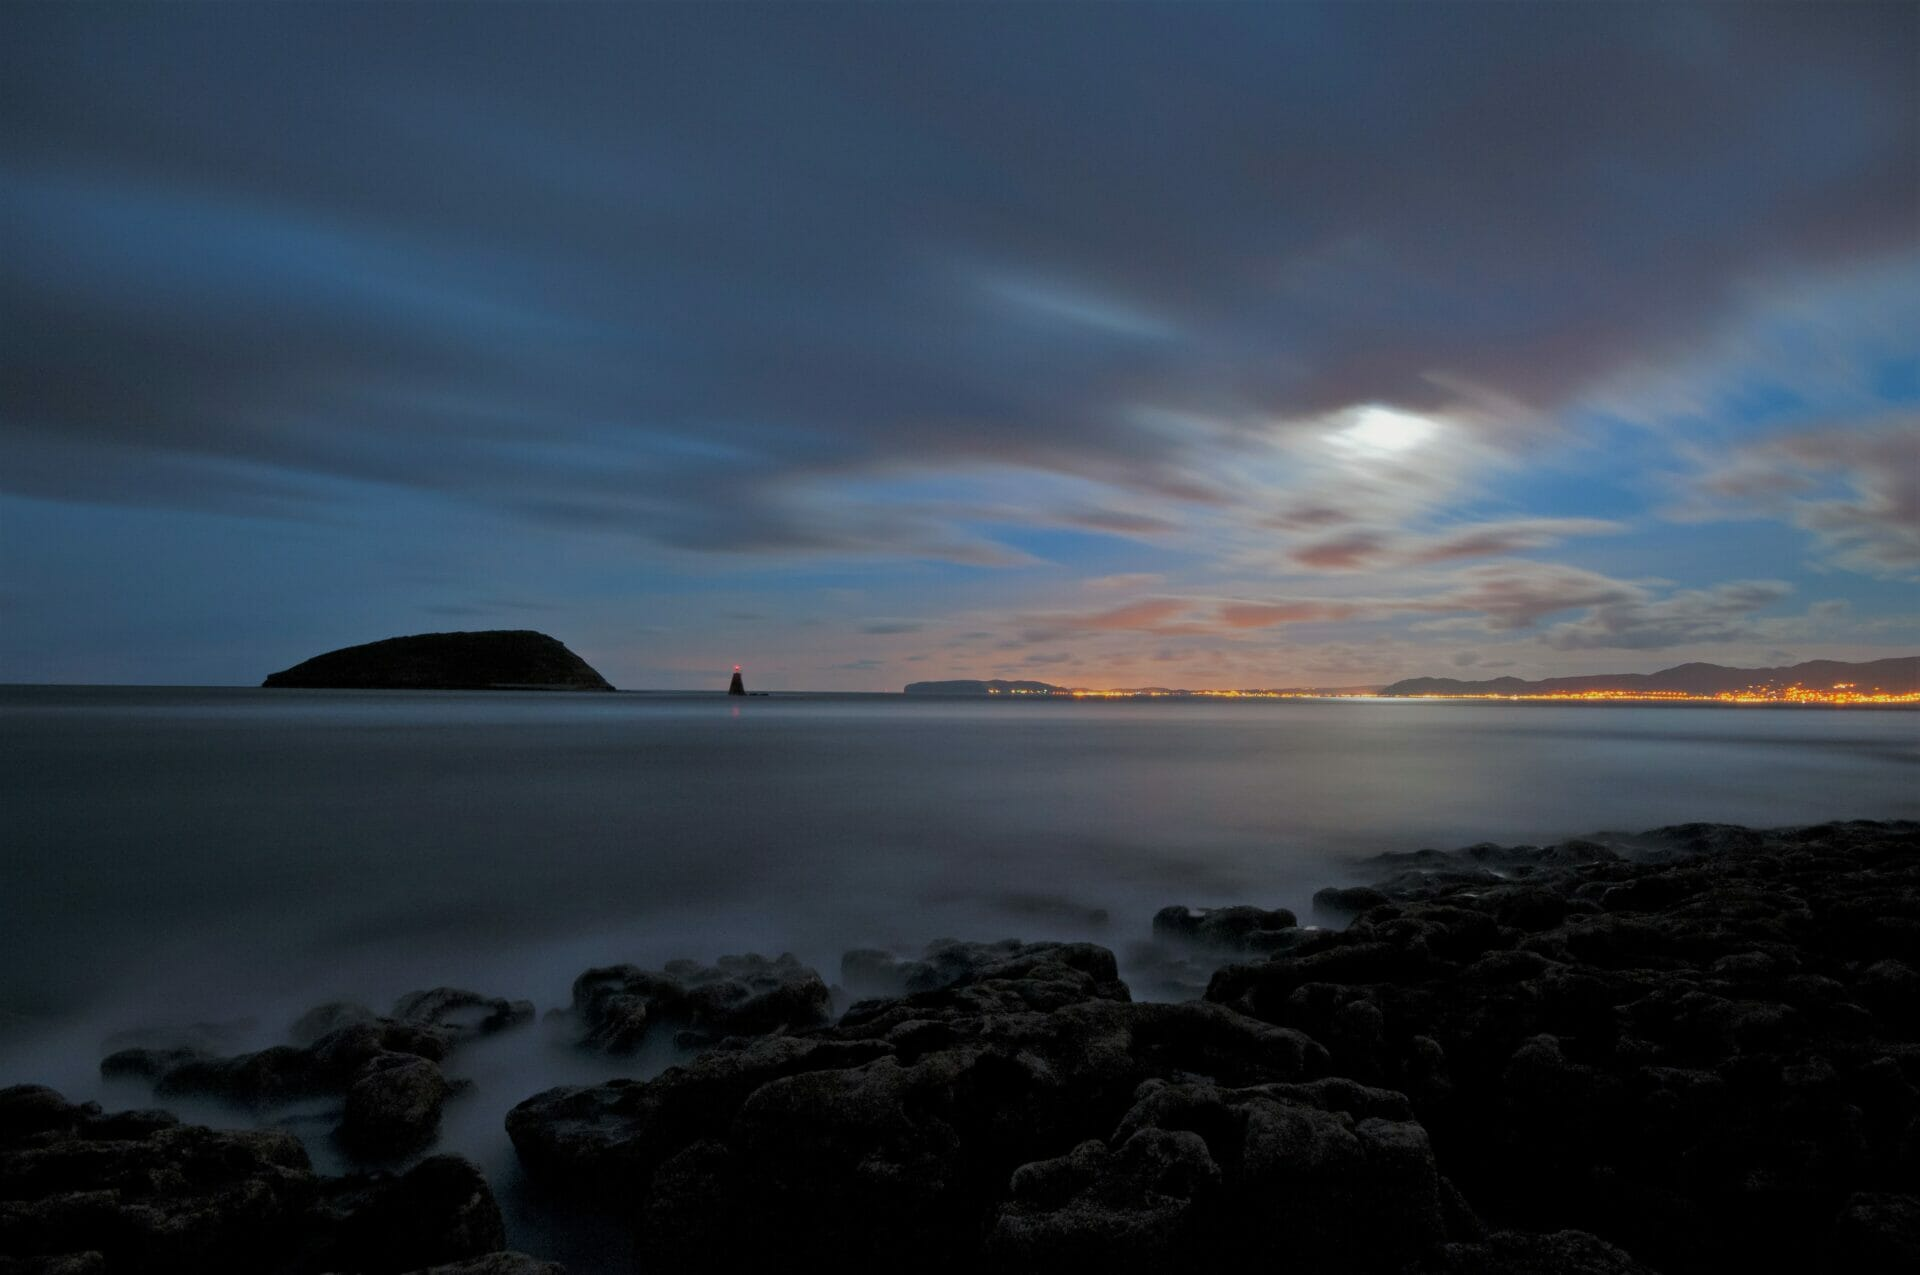 Photo of Night Sky at Penmon Point on Anglesey - Taken on a How To Photograph The Night Sky Welshot Photographic Academy Event.